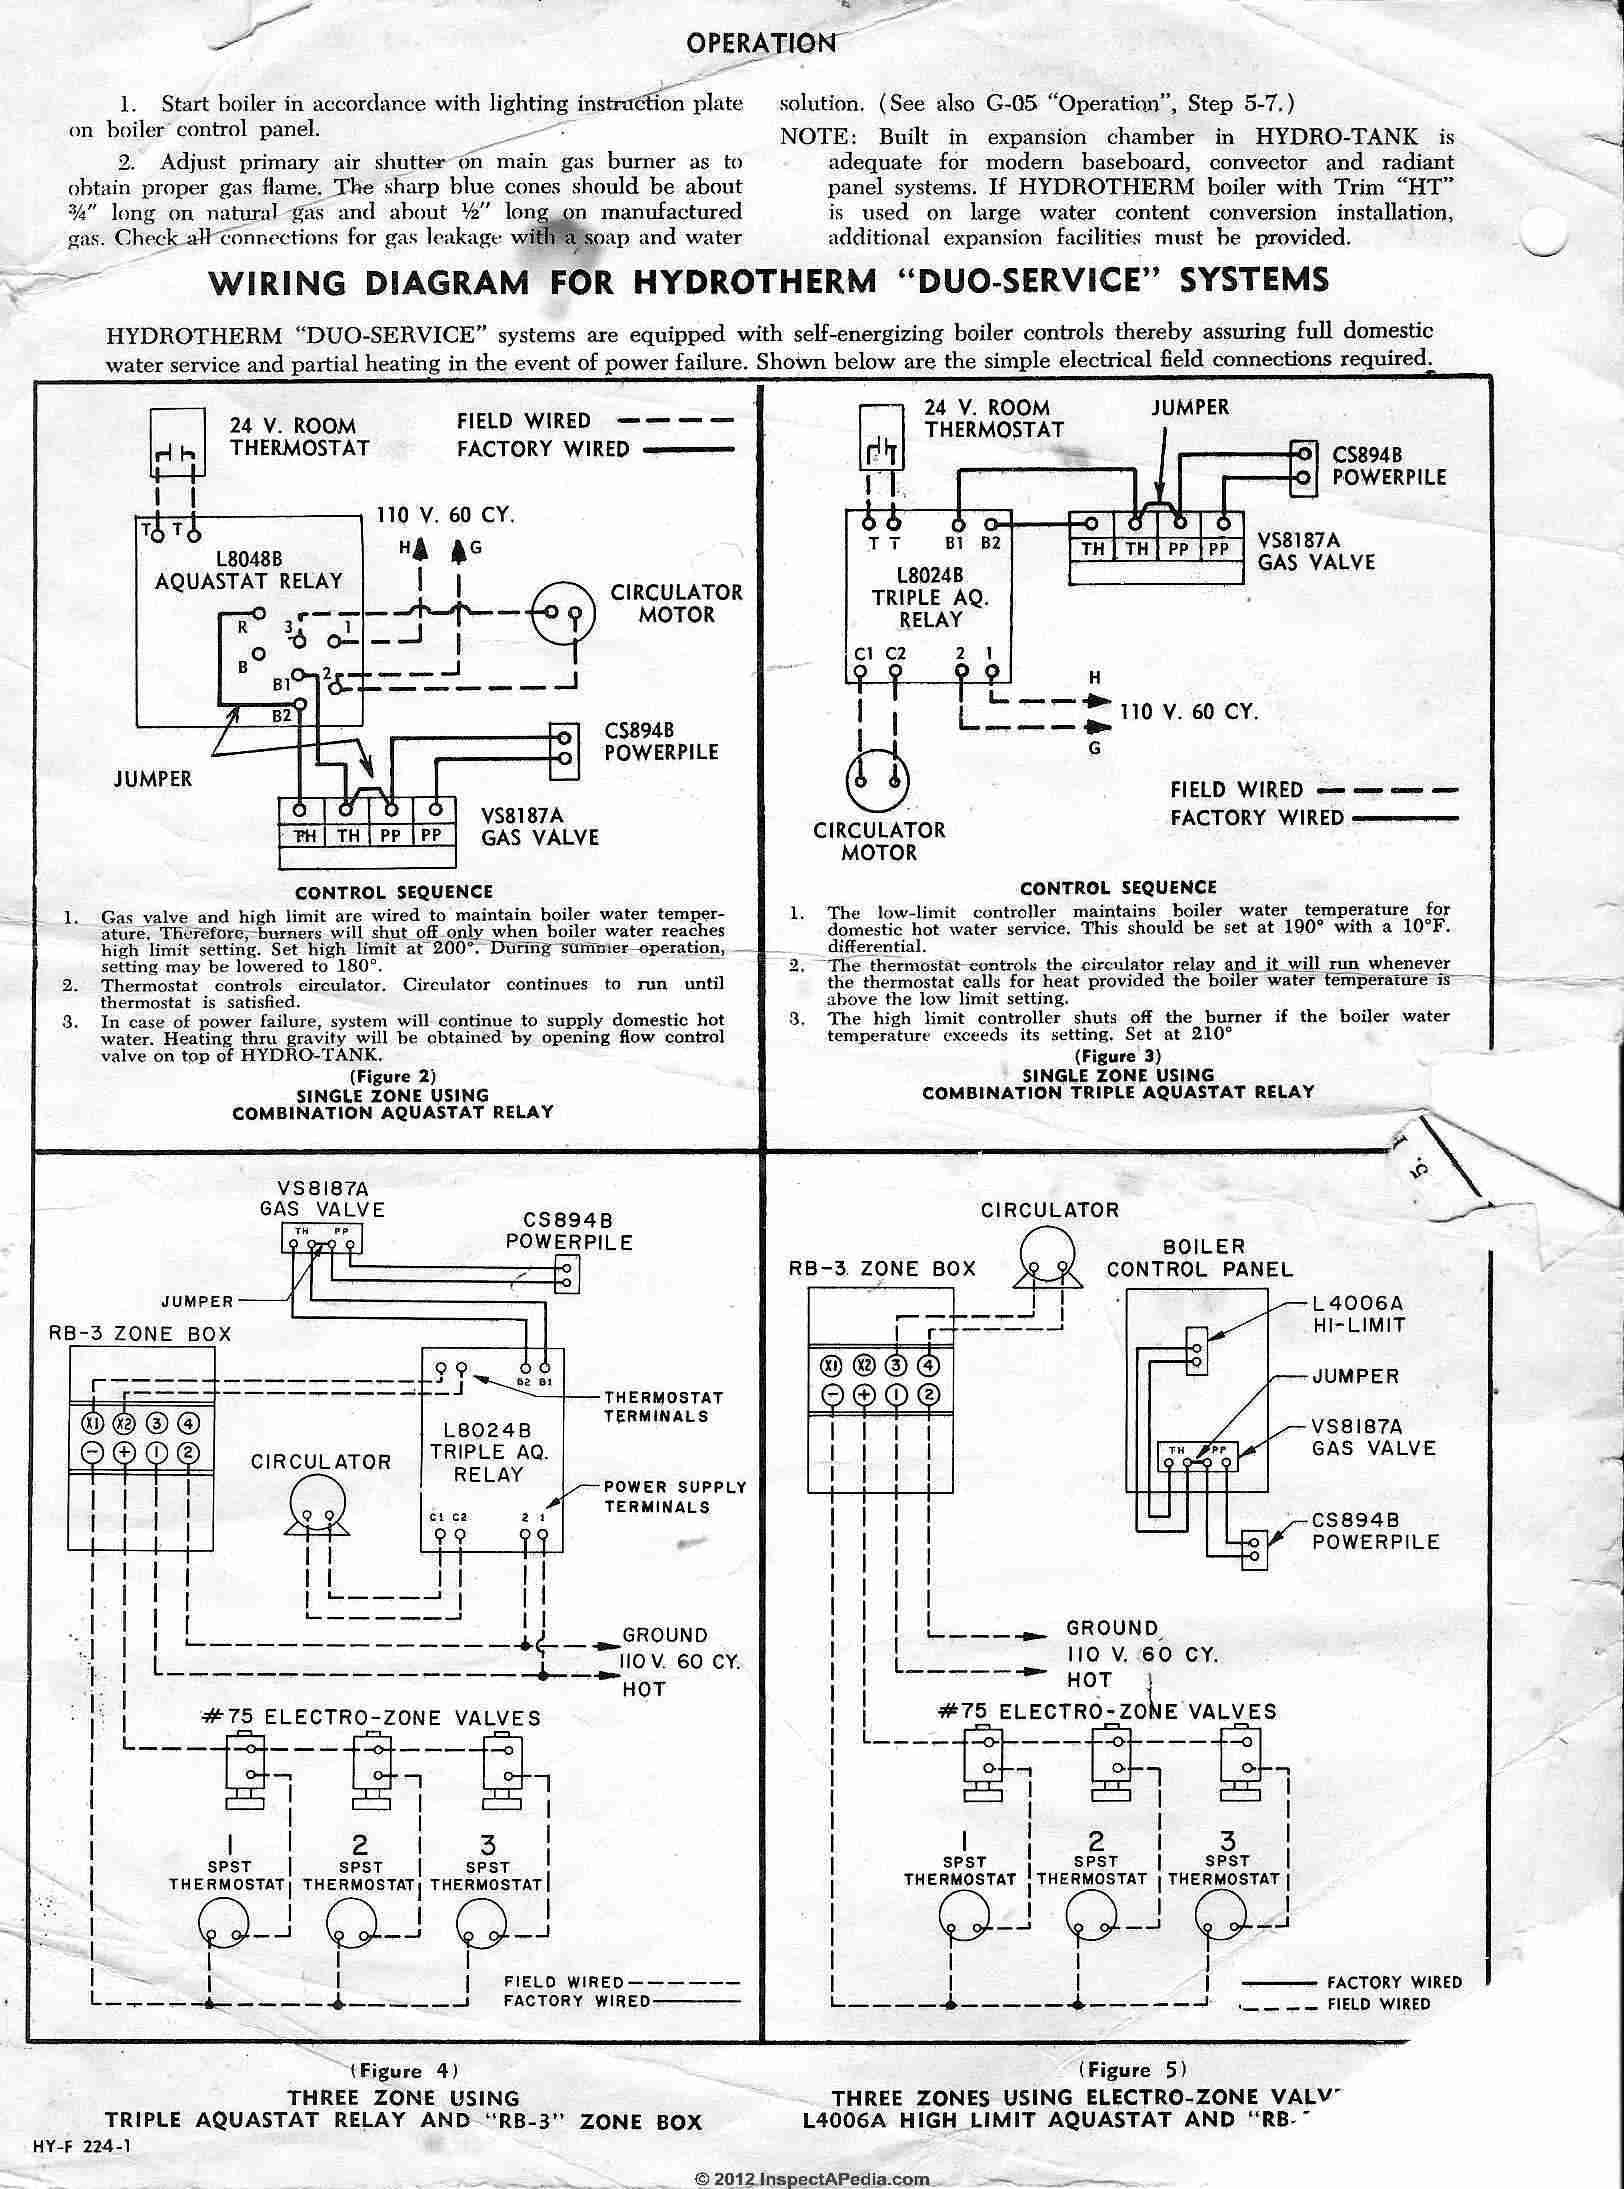 L8024B_Aquastat_0422_DJFcs heating boiler aquastat control diagnosis, troubleshooting, repair Gas Furnace Wiring Diagram at bakdesigns.co